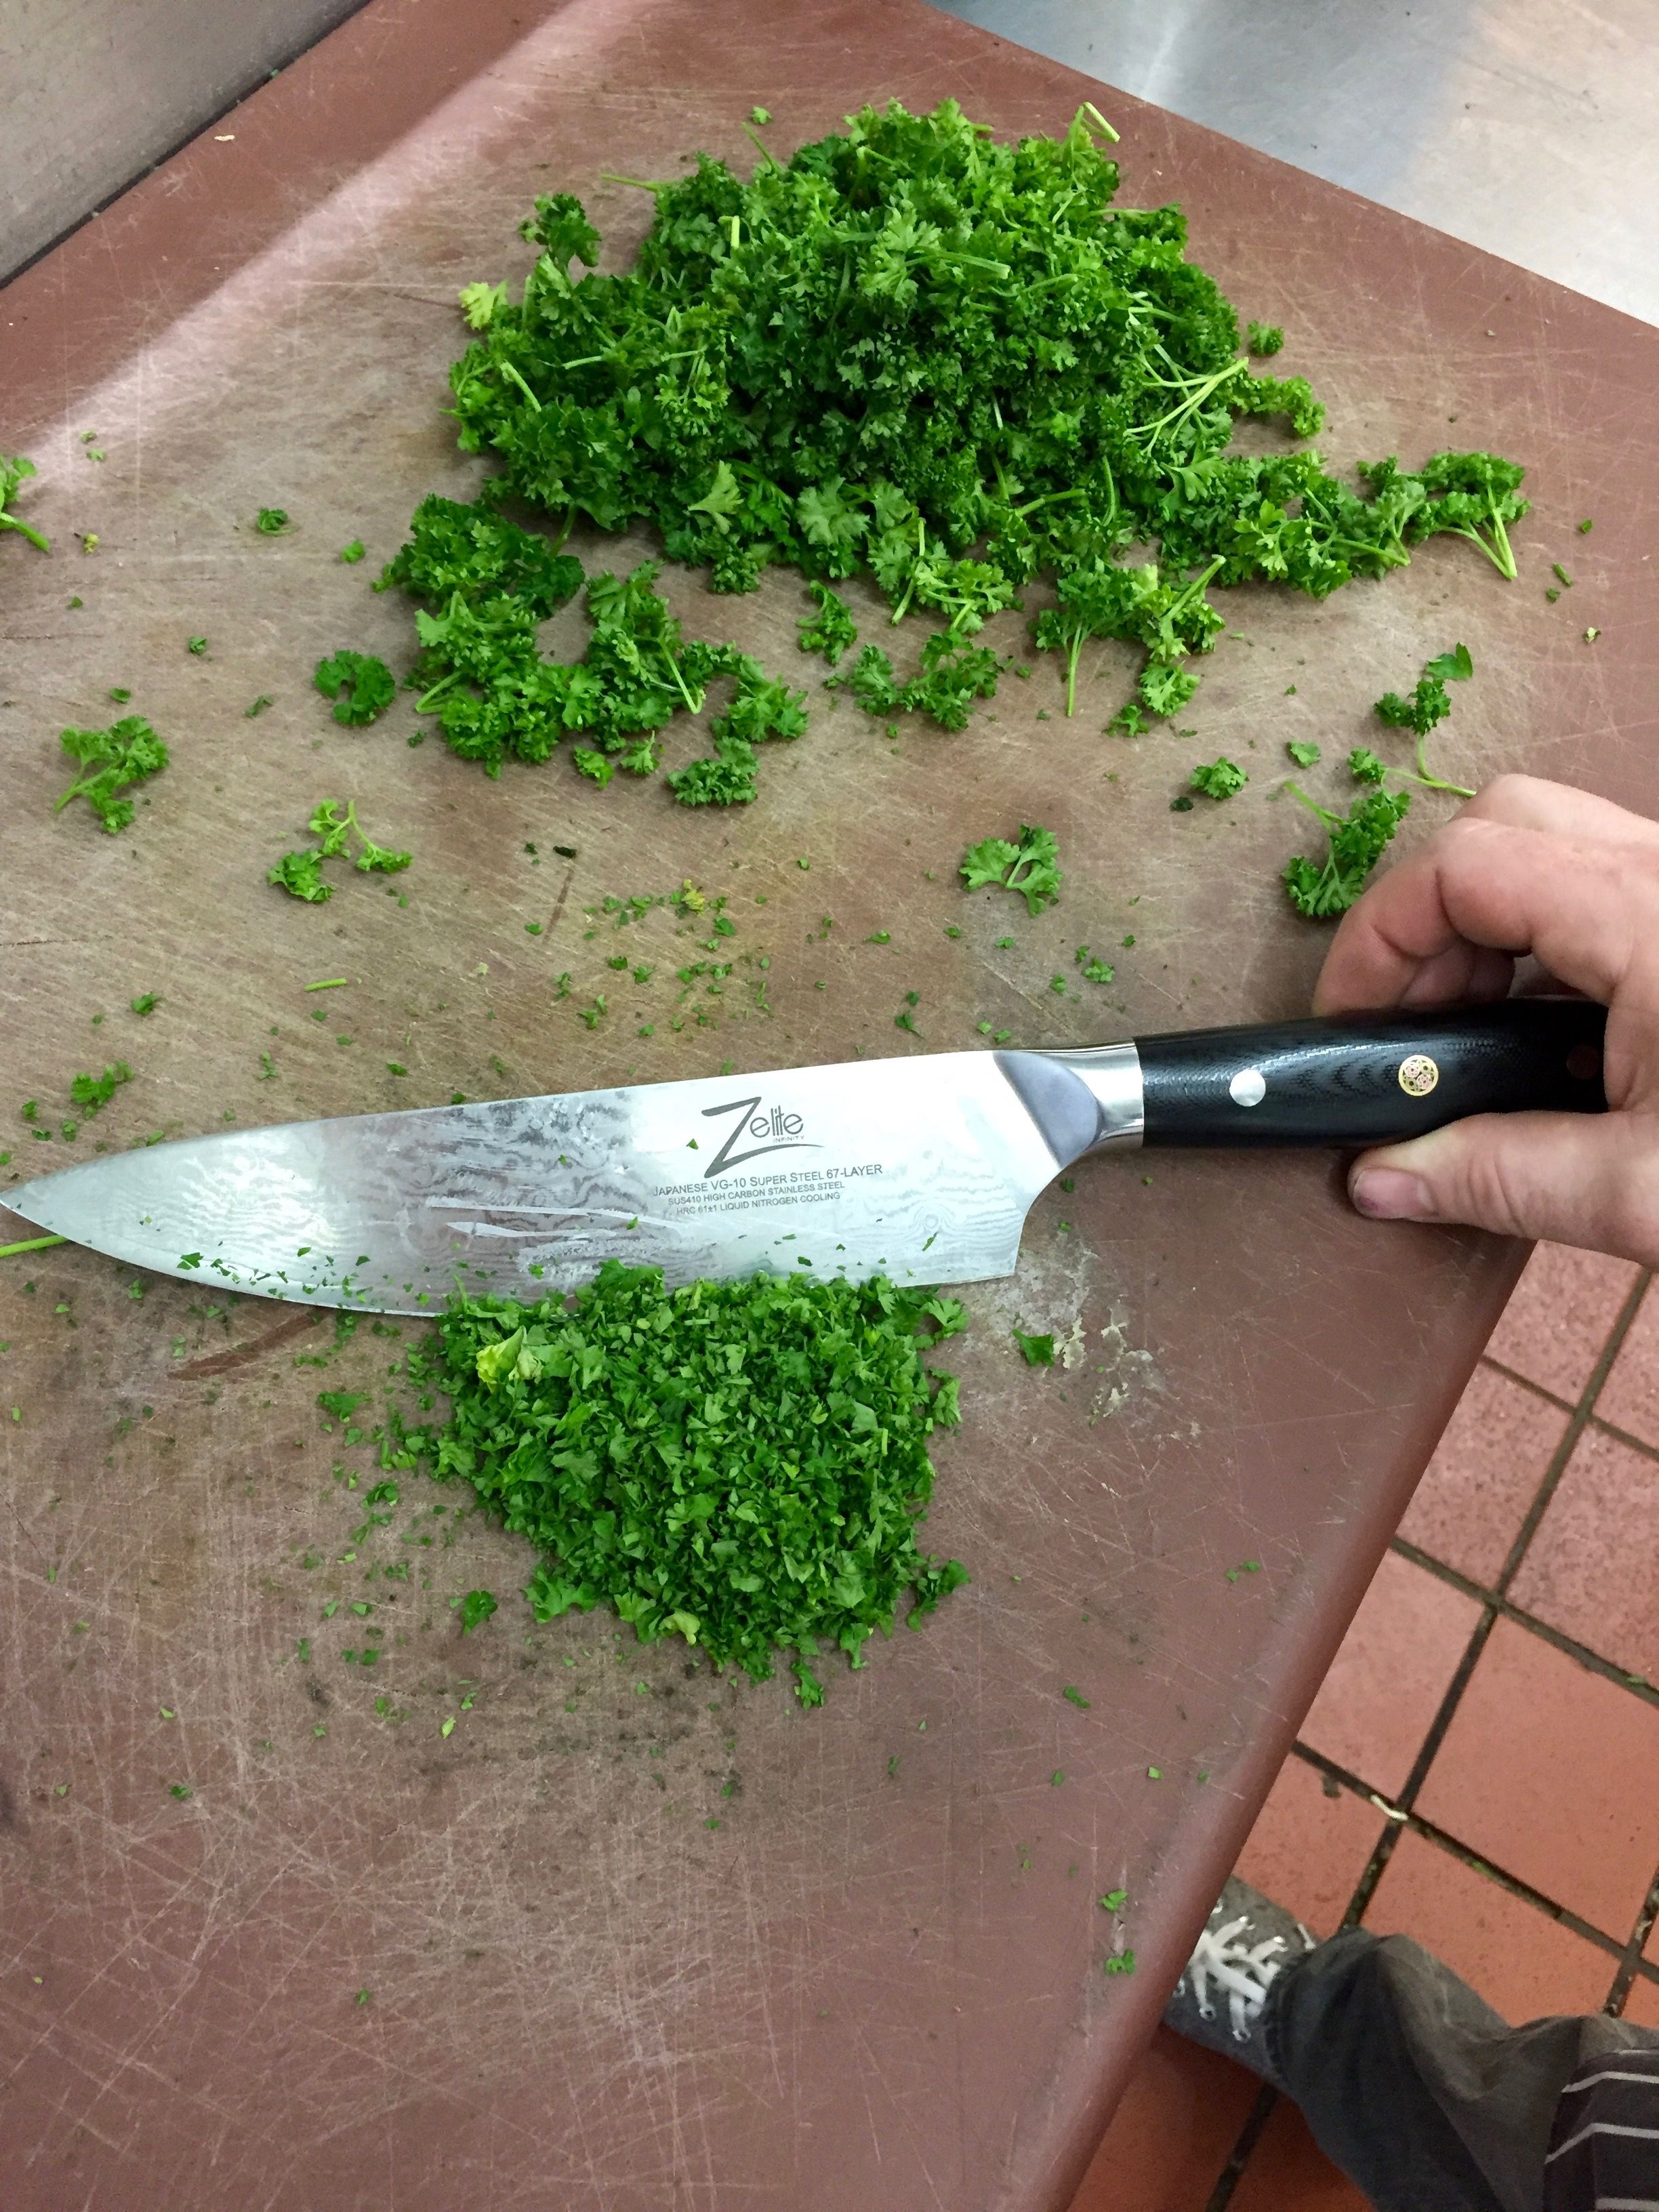 Head Chef from Ramside Hall Hotel just finished mincing some Fresh Parsley! Black Friday Deal Now Available! http://www.amazon.com/Zelite-Infinity-Stainless-Steel-Razor-Retention/dp/B0110EKTUU/ref=cm_cr_pr_product_top?ie=UTF8